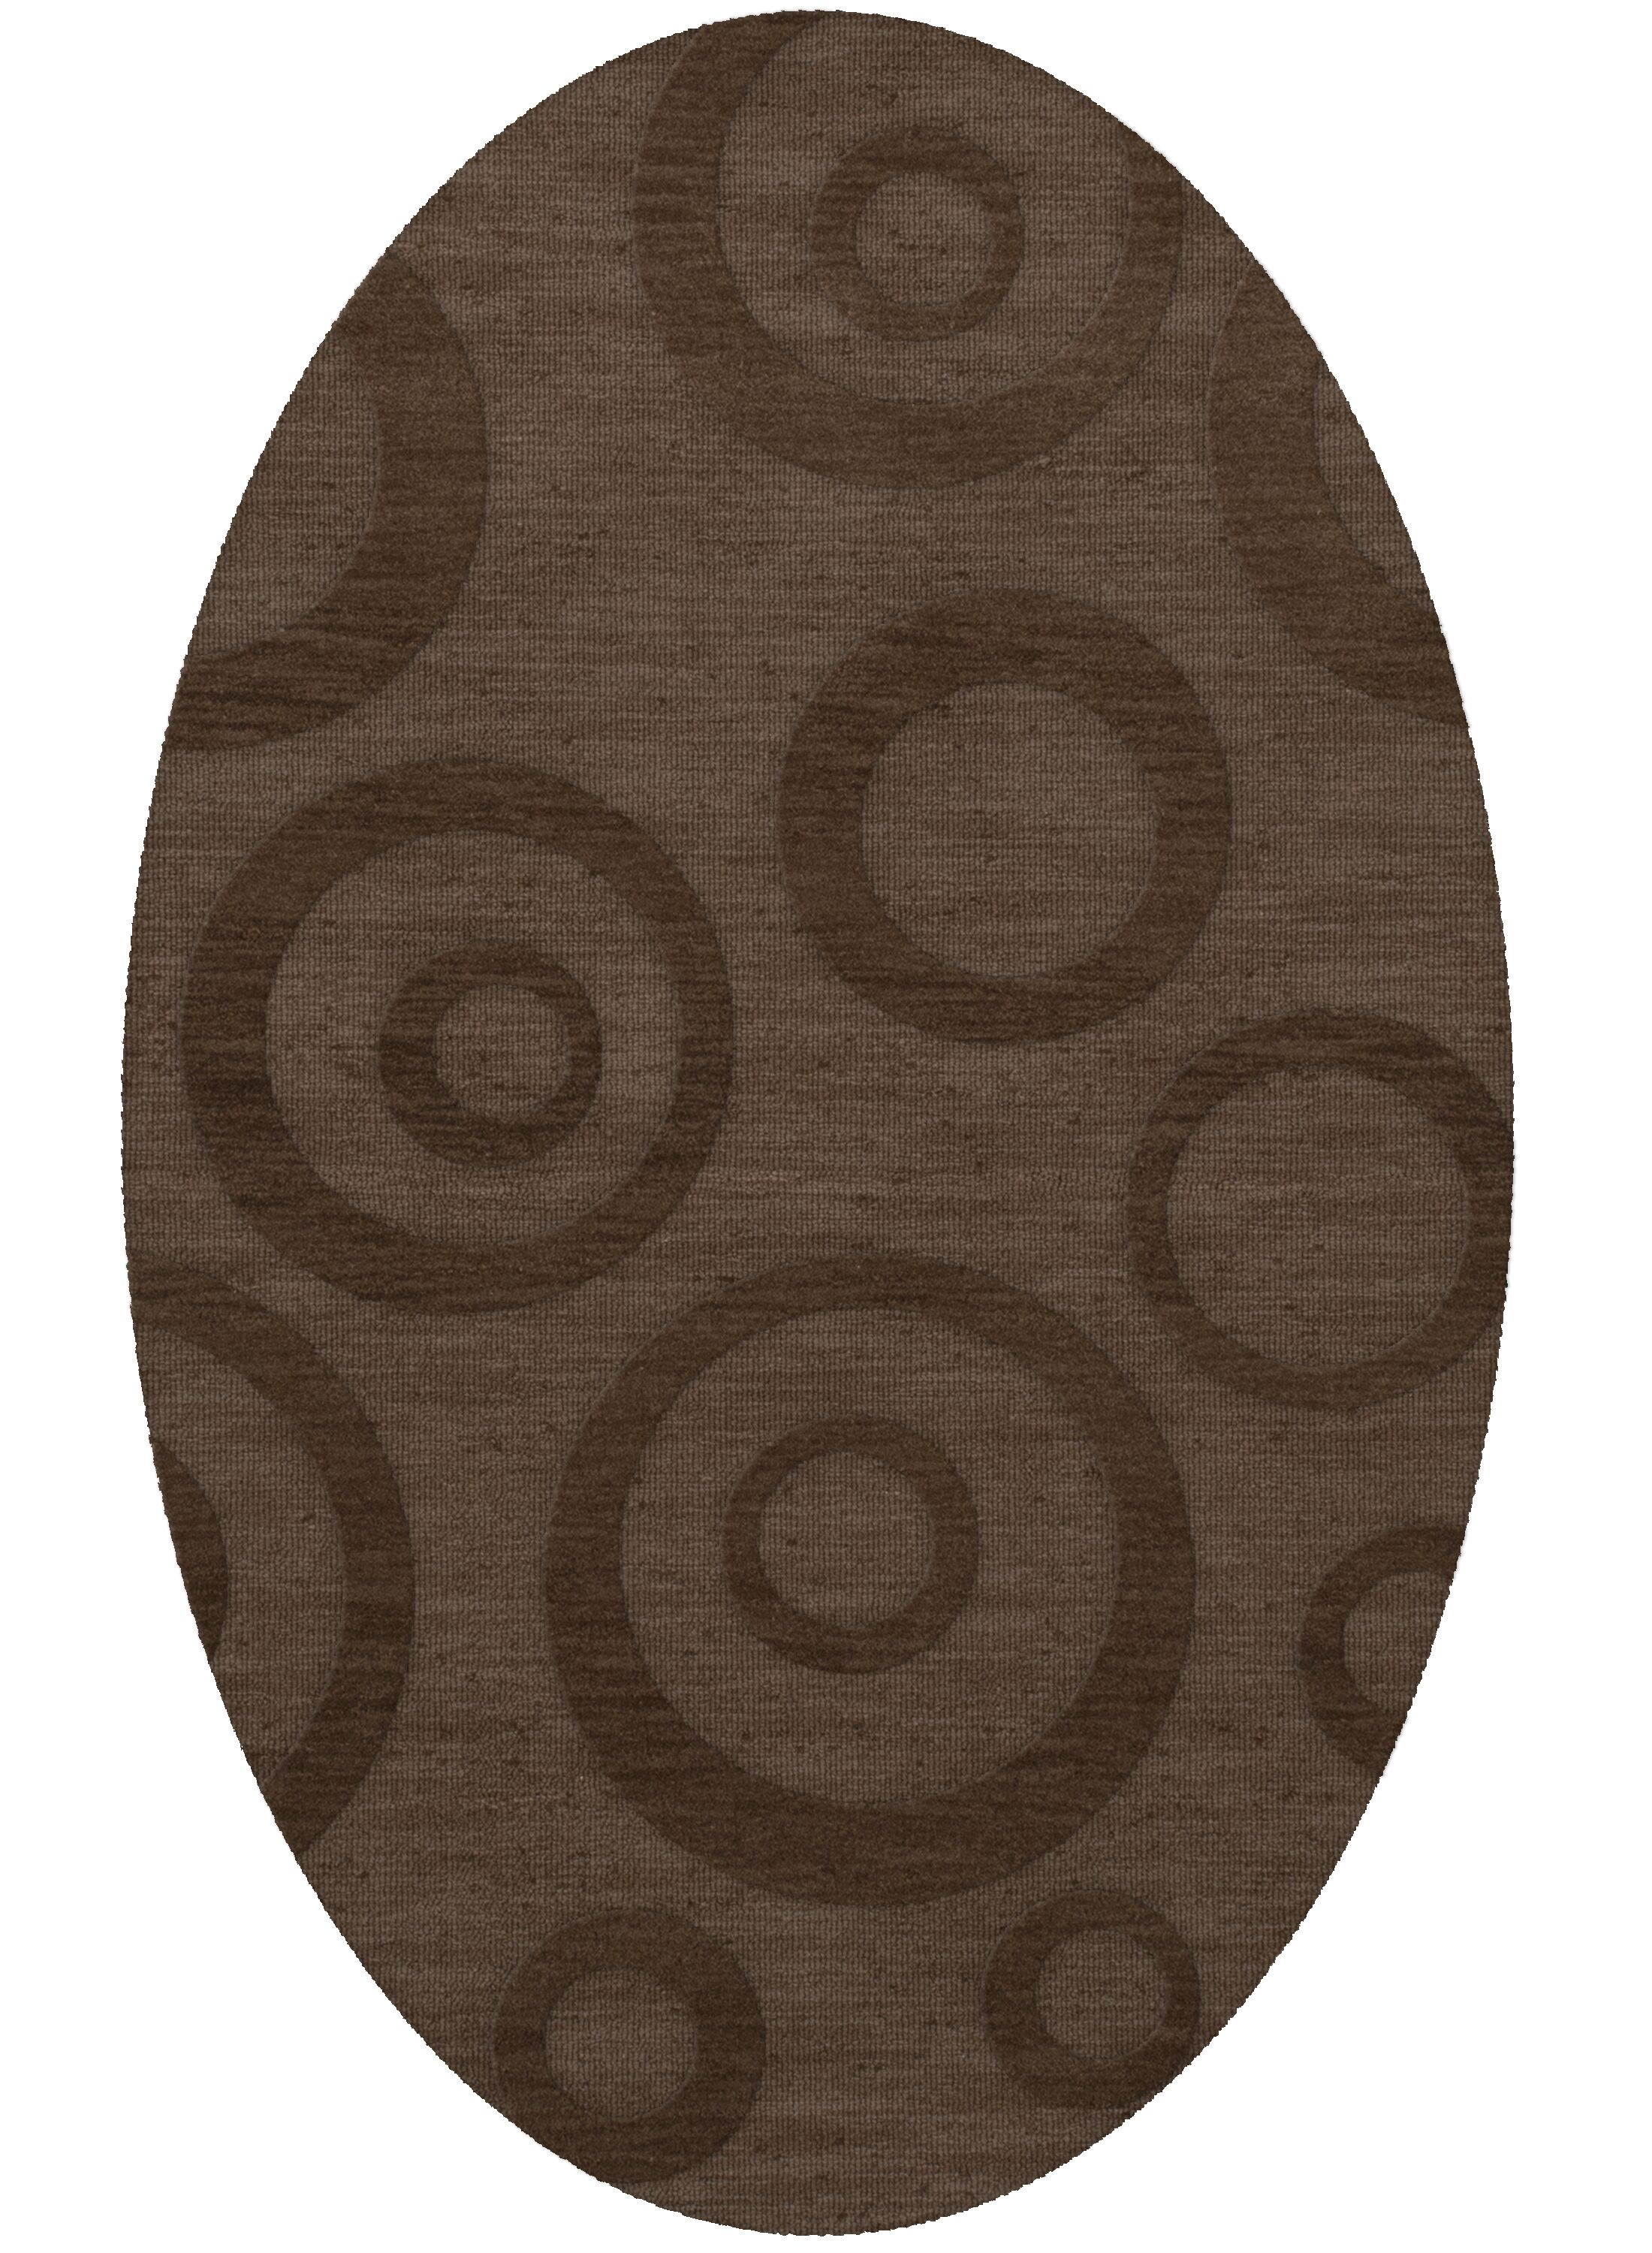 Dover Tufted Wool Mocha Area Rug Rug Size: Oval 12' x 18'